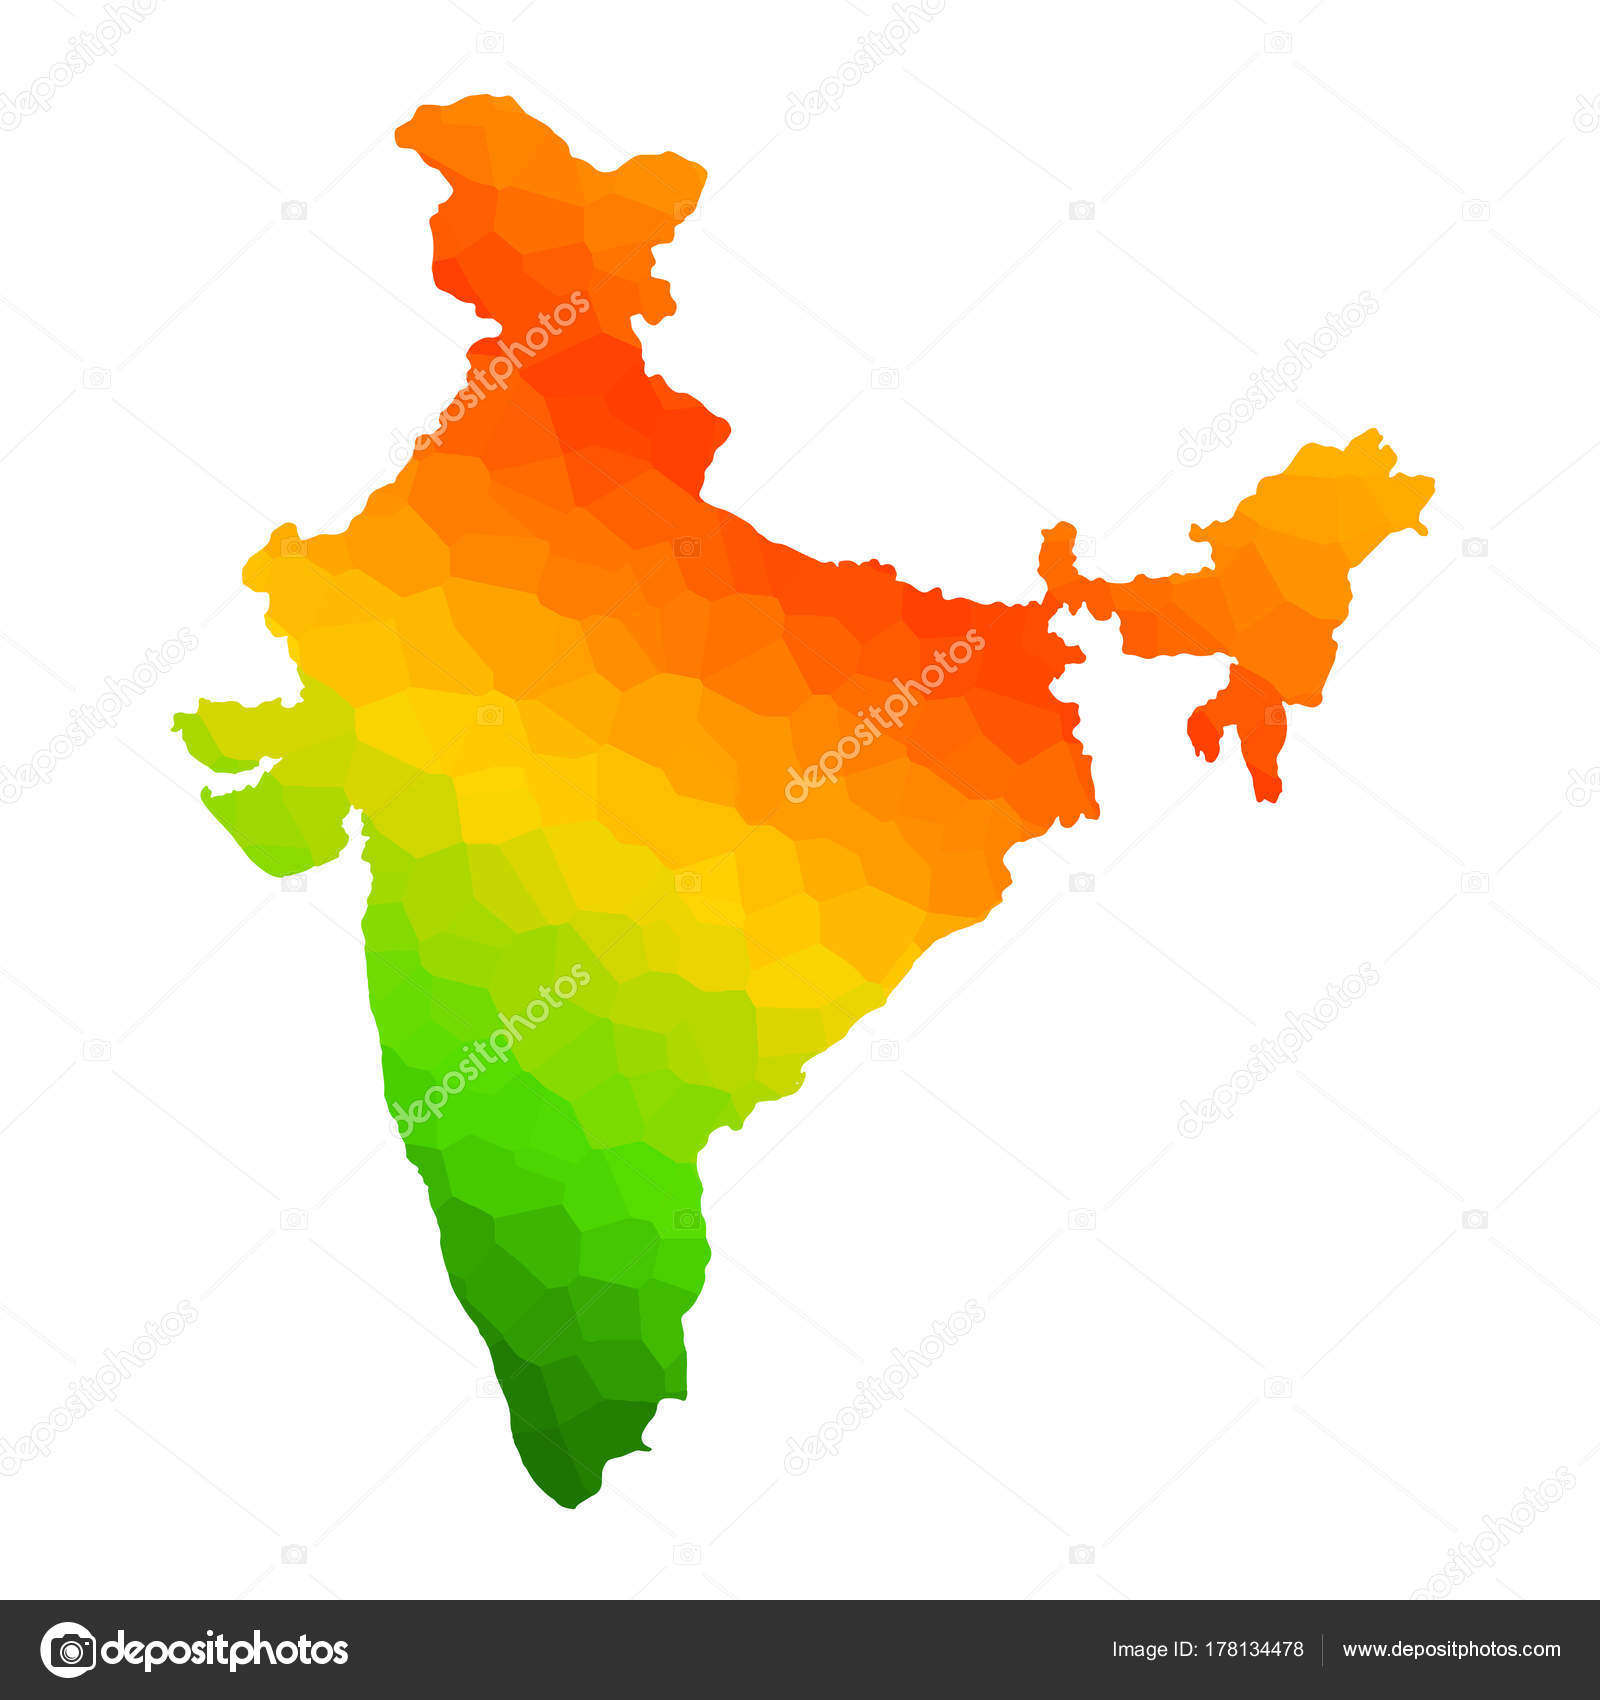 Drapeau India Tricolor Indian Flag Map Background For Republic And Independence